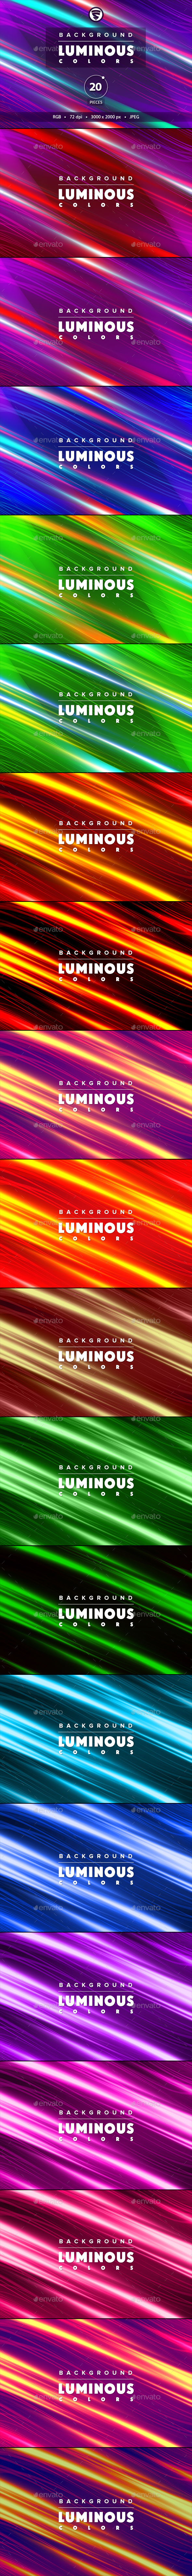 Background luminous colors 20 pieces - Abstract Backgrounds